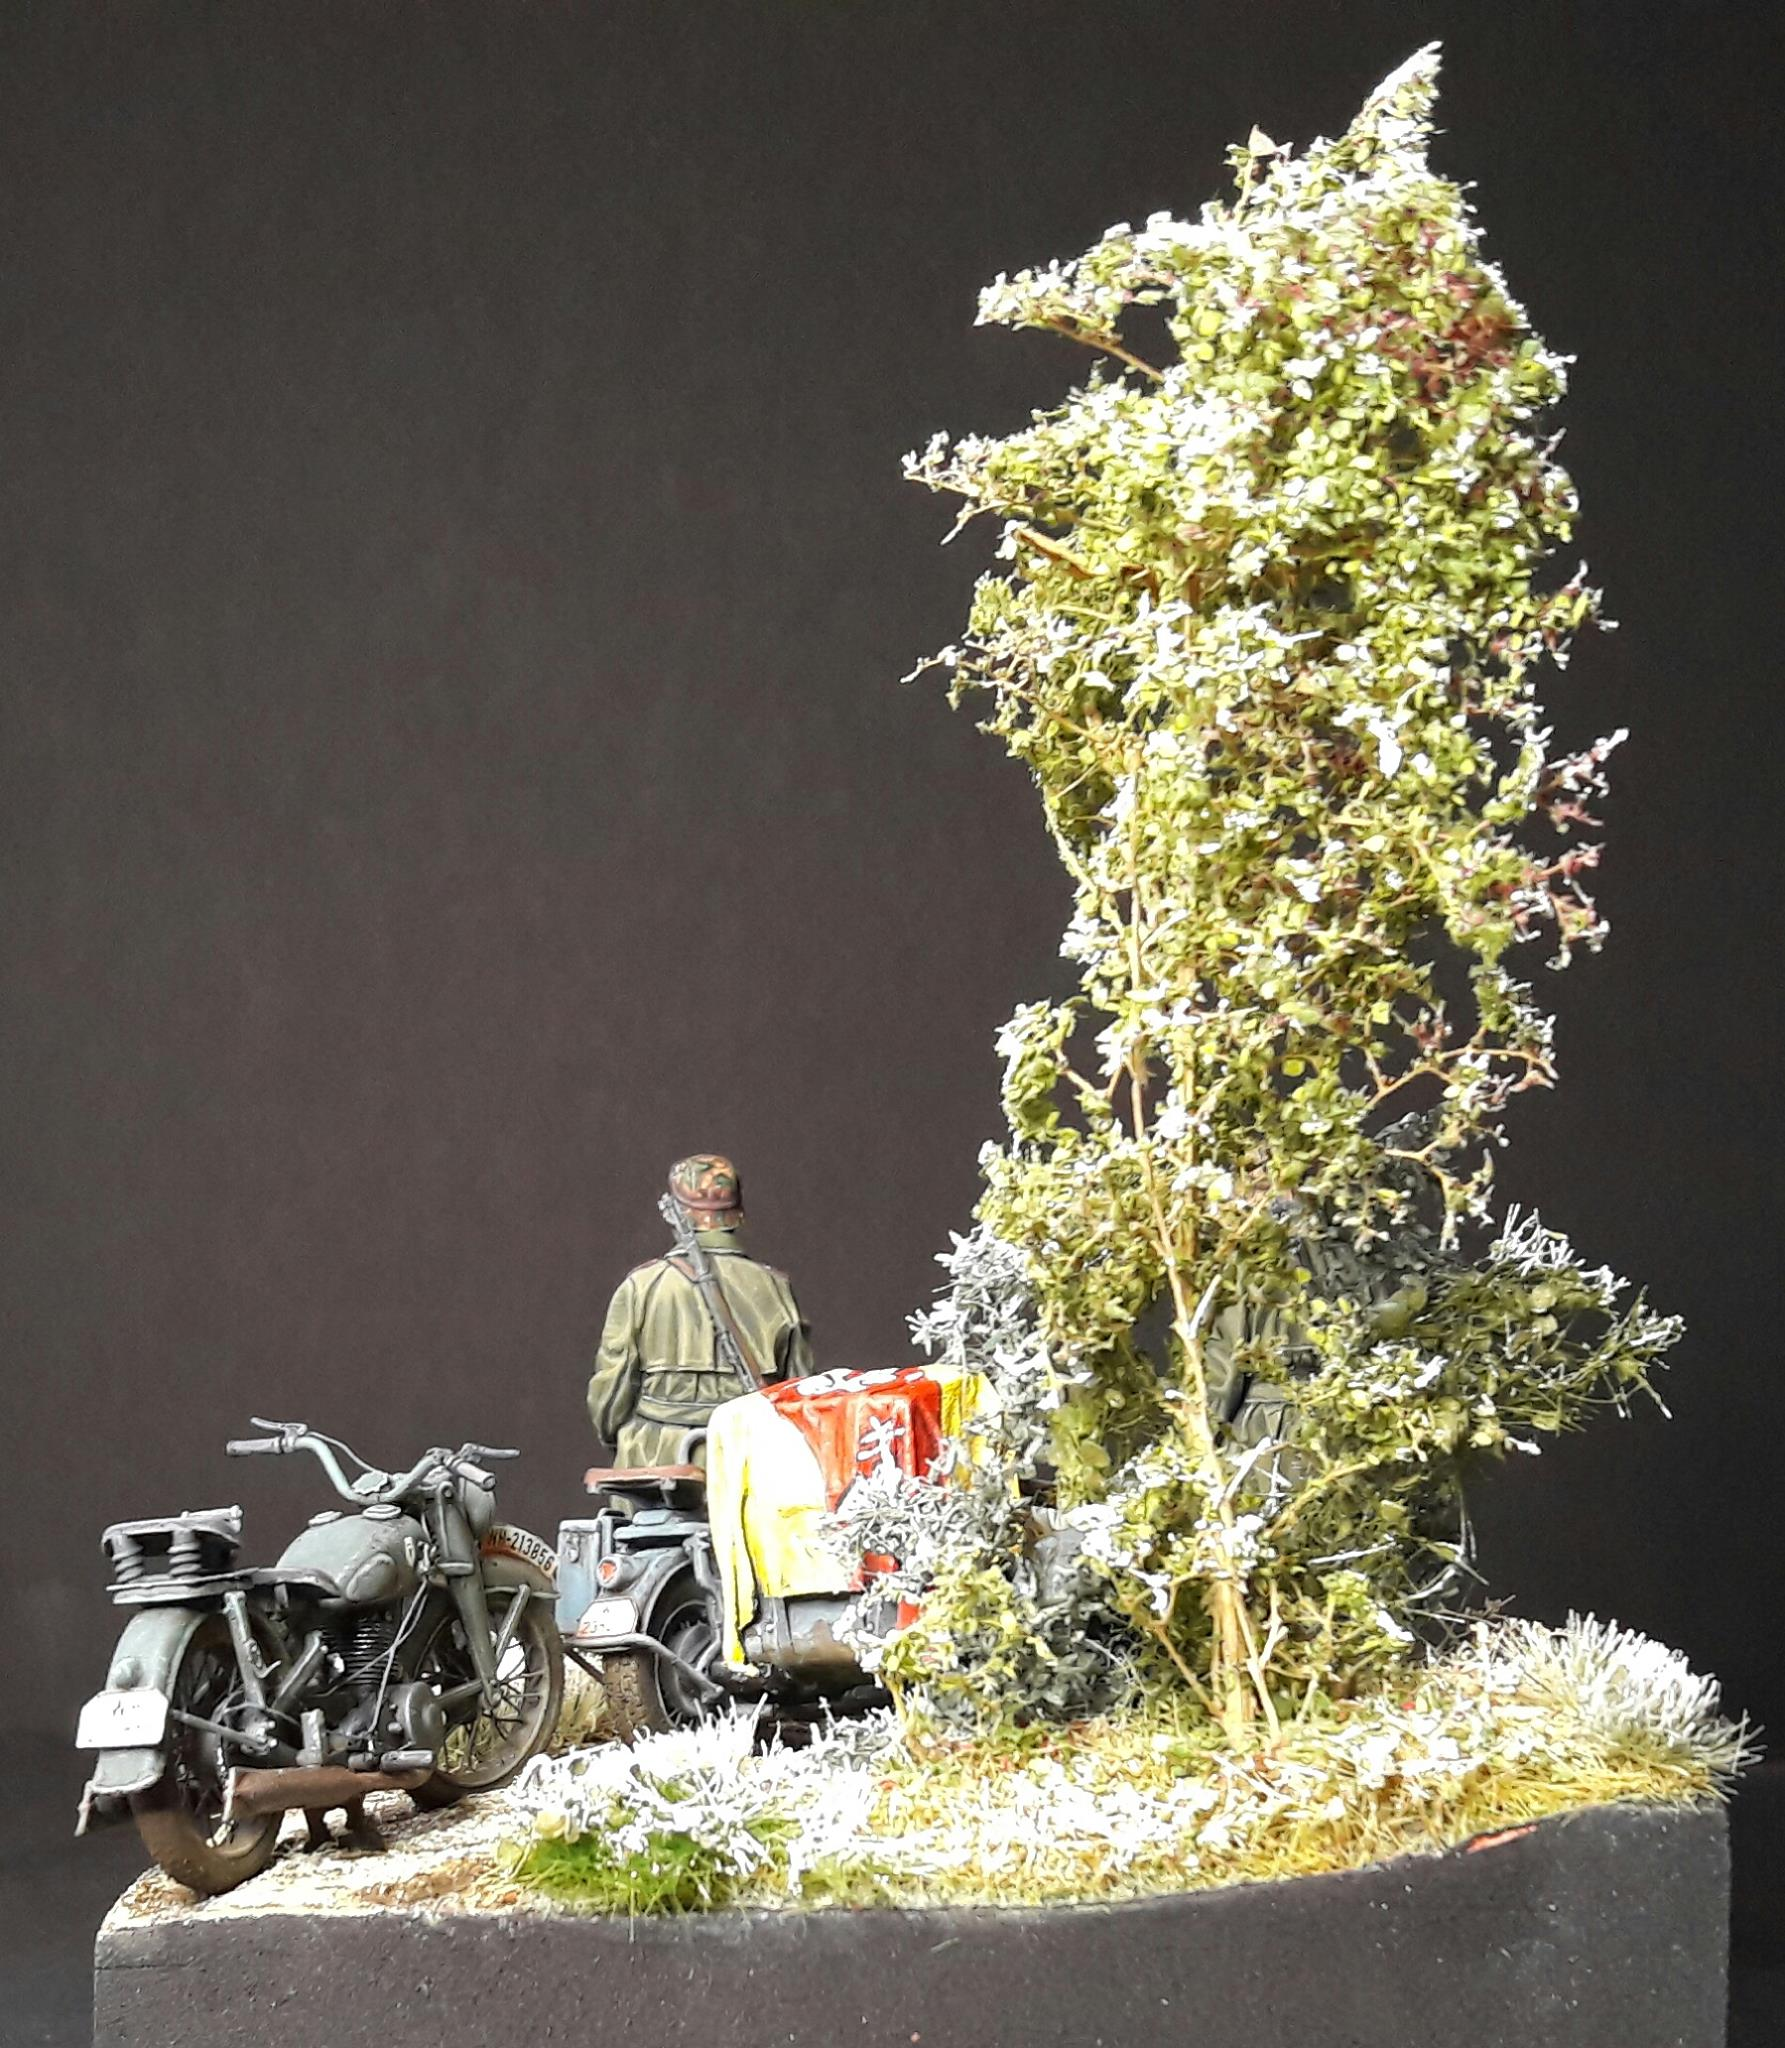 Zündapp KS750 - Sidecar - Great Wall Hobby + figurines Alpine - 1/35 - Page 5 309414201329451021180584831619390016395o